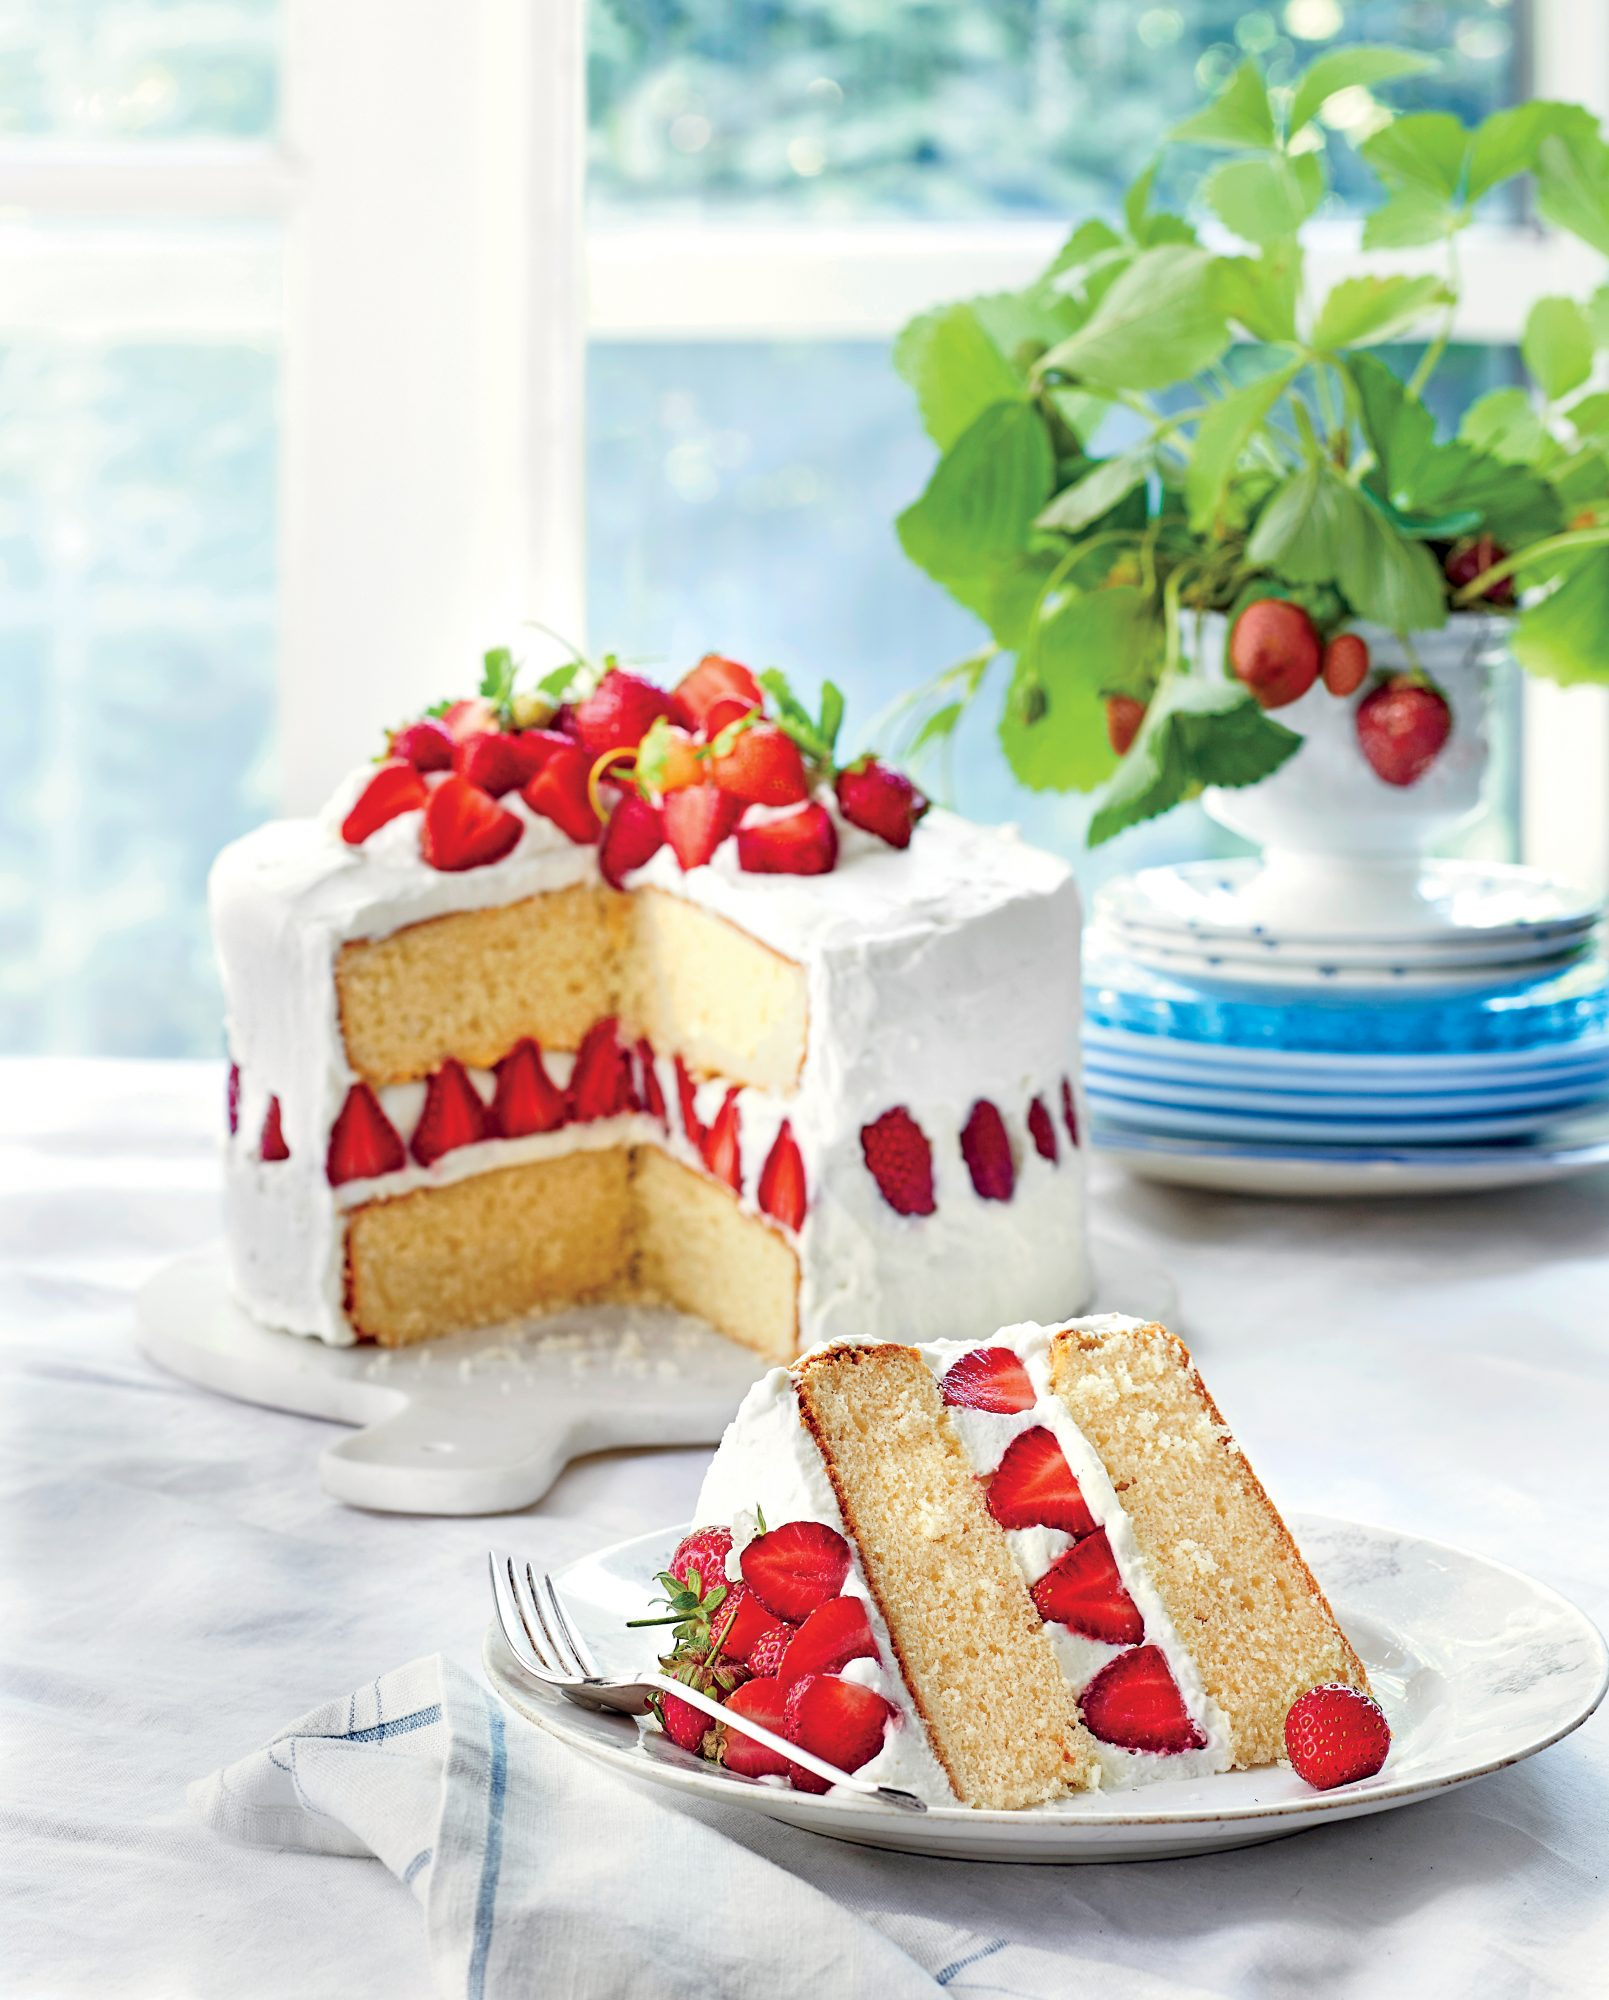 Cake Recipes In Pictures: Strawberry Dream Cake Recipe